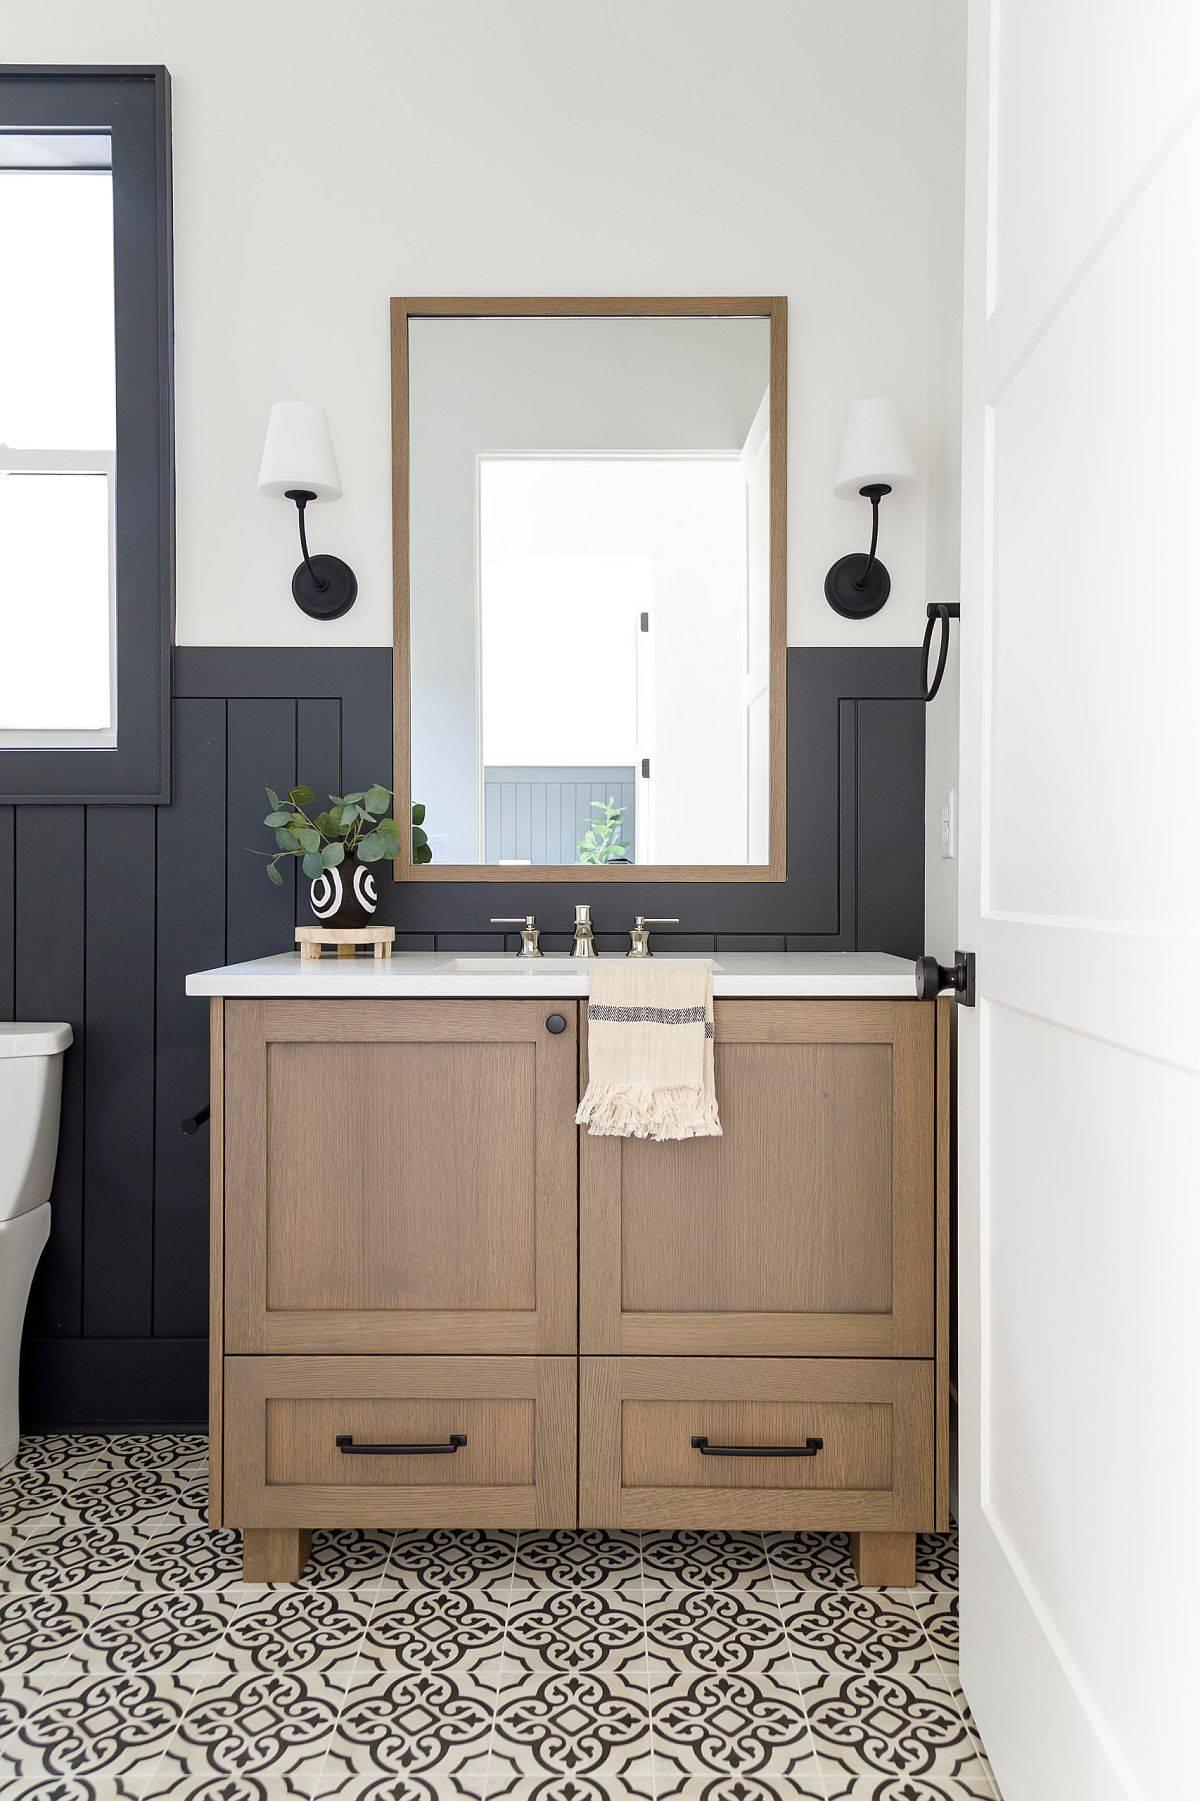 Painted-tile-on-the-floor-brings-pattern-to-the-small-bathroom-in-dark-gray-and-white-90219